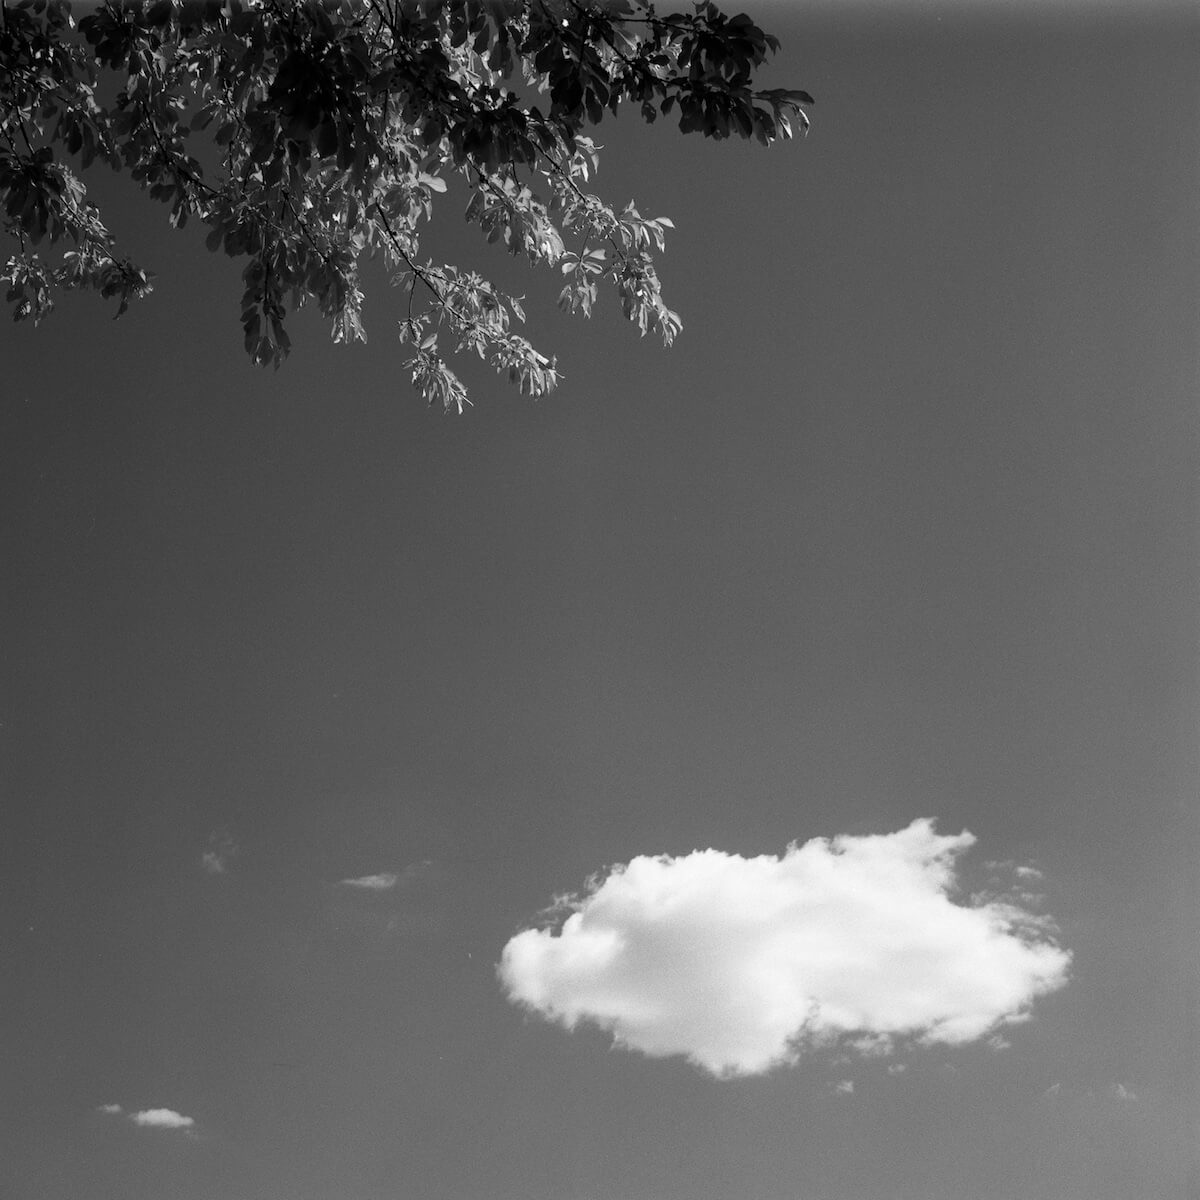 5 Frames... Of a Cumulus afternoon with a red filter on Rollei Superpan 200 (EI 200 / 120 format / Rolleiflex T) - by Olaf Lengler